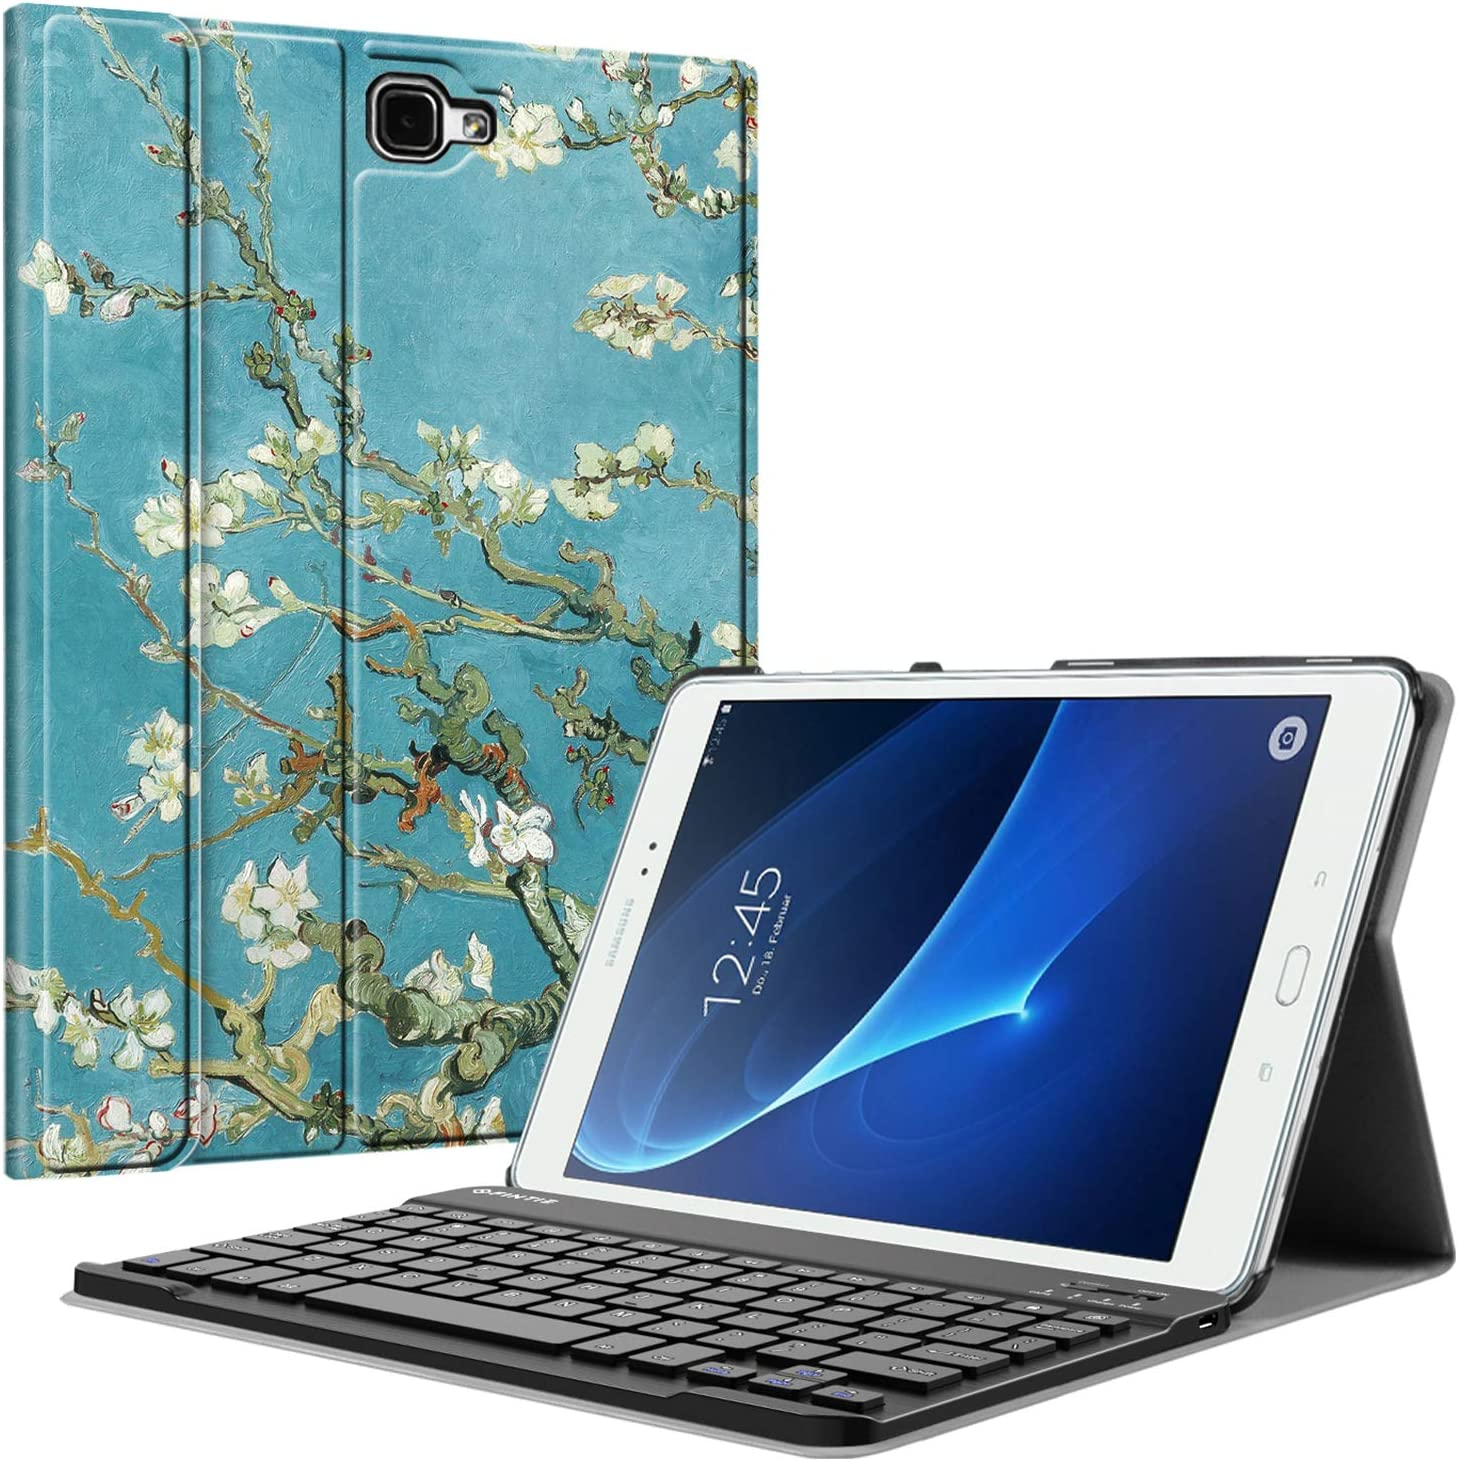 Fintie Keyboard Case for Samsung Galaxy Tab A 10.1(2016 NO S Pen Version),Slim Lightweight Stand Cover w/Magnetically Detachable Wireless Bluetooth Keyboard, Blossom